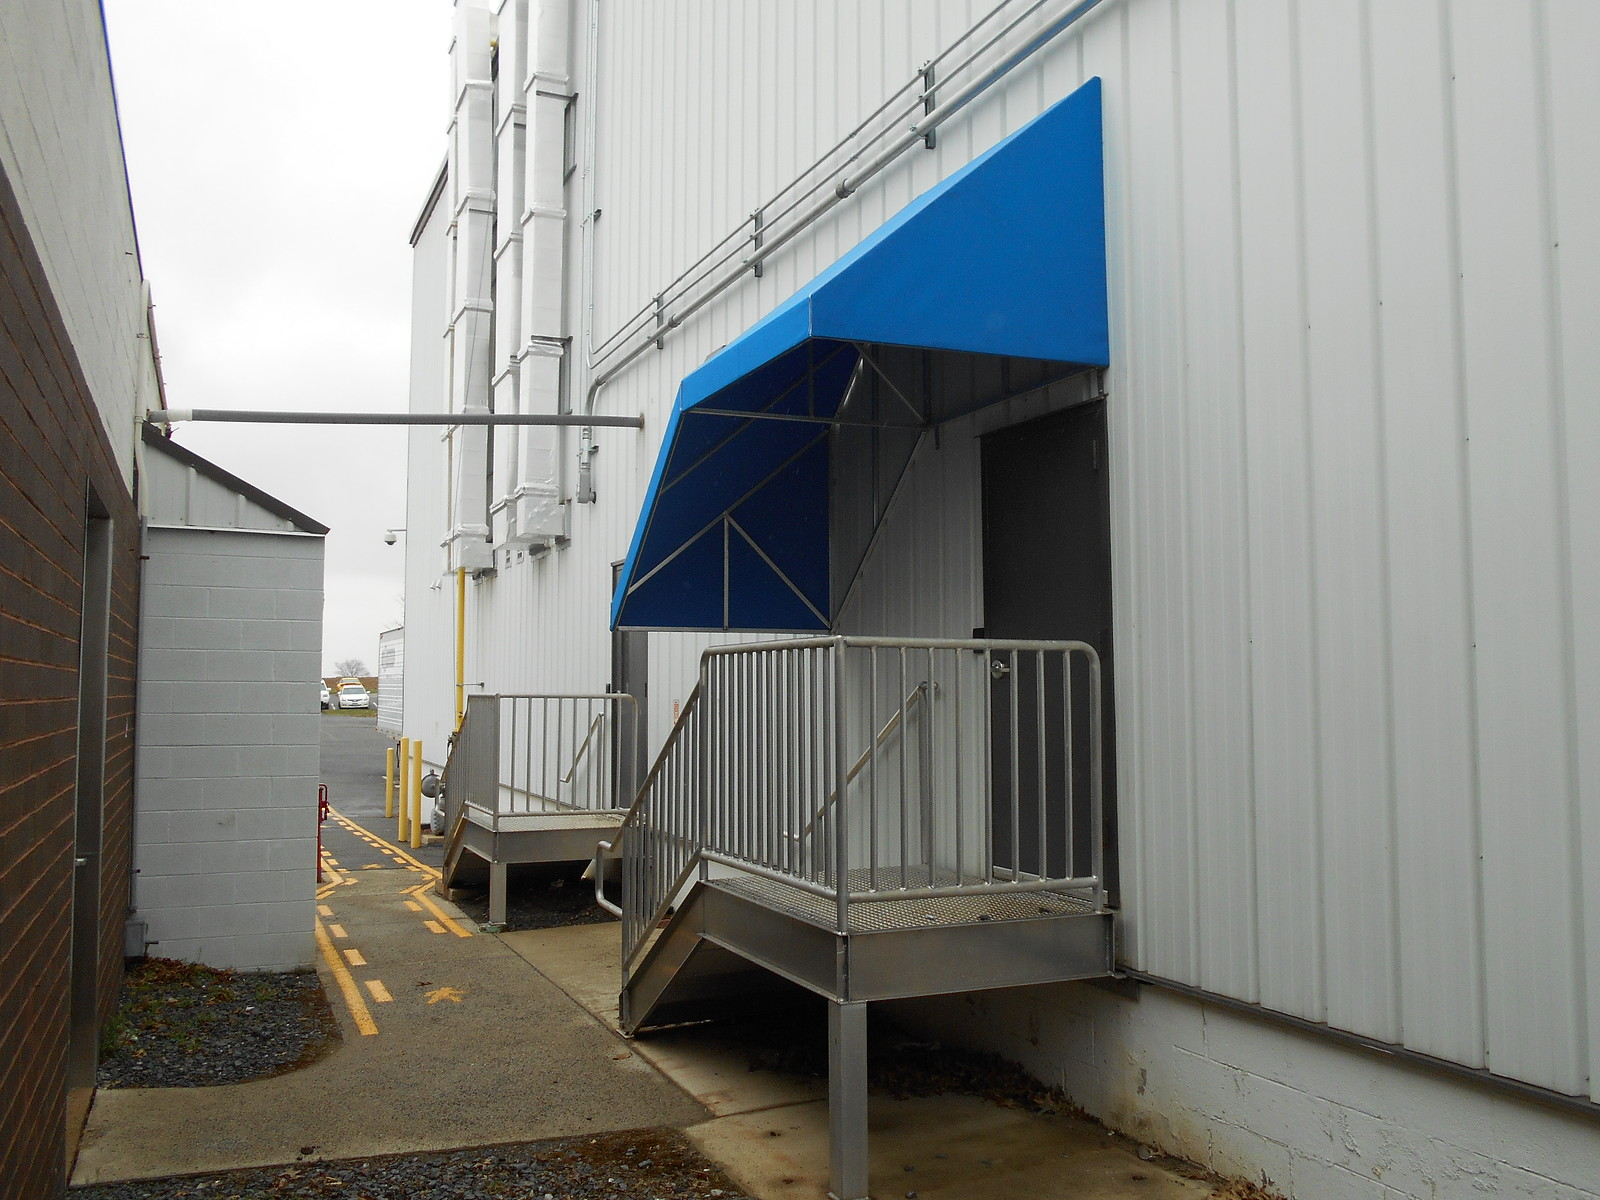 Commercial-Stairs-Ramp Awnings